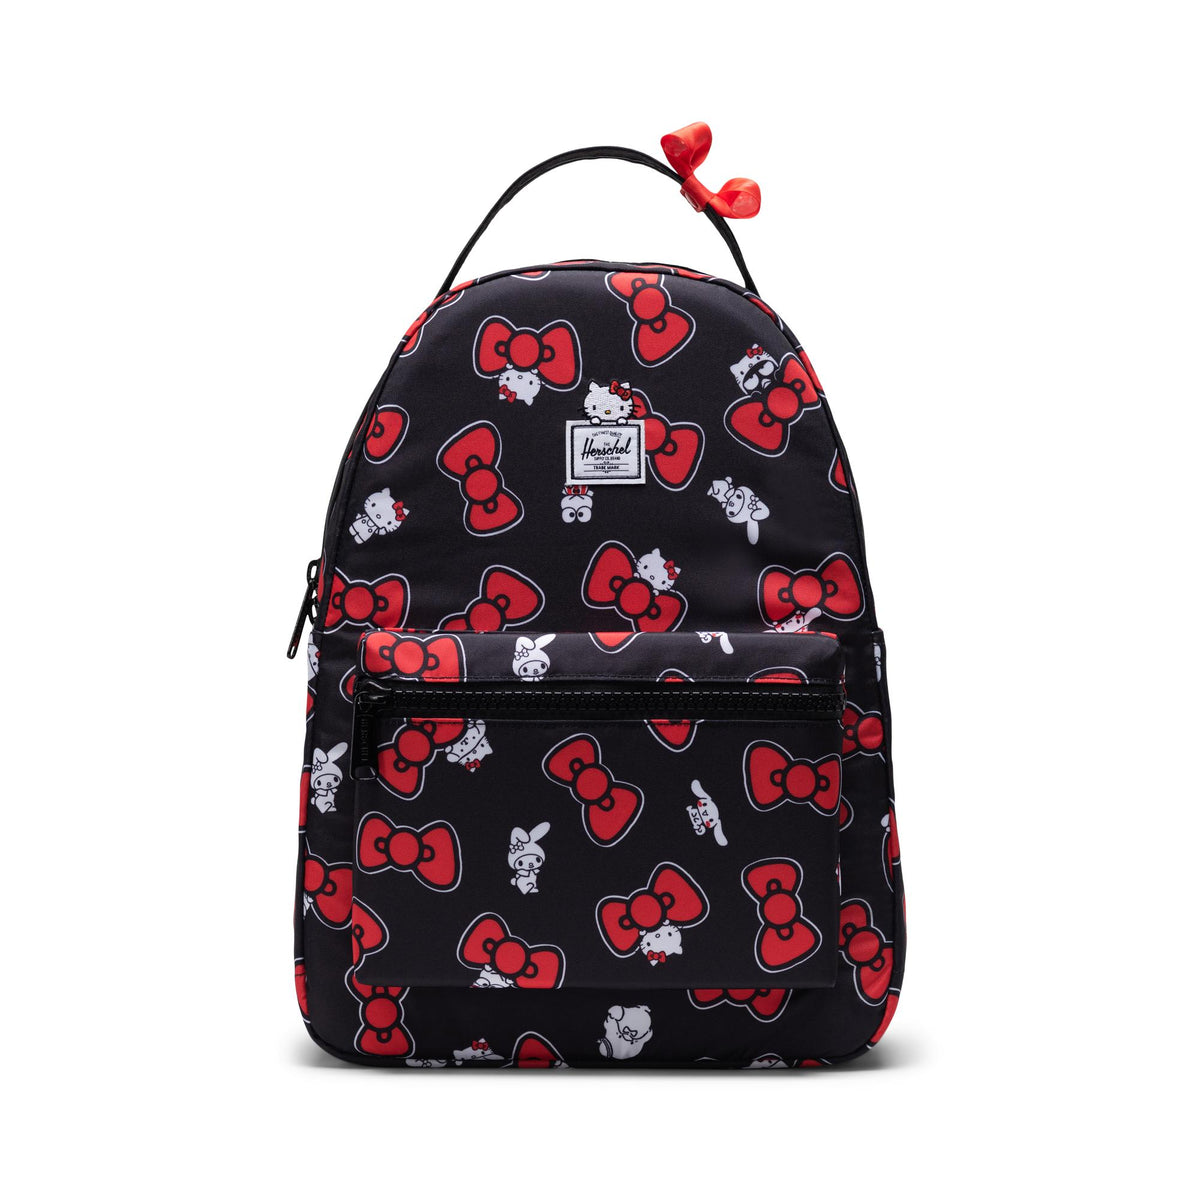 Herschel x Hello Kitty & Friends Bows Nova Mid Volume Backpack